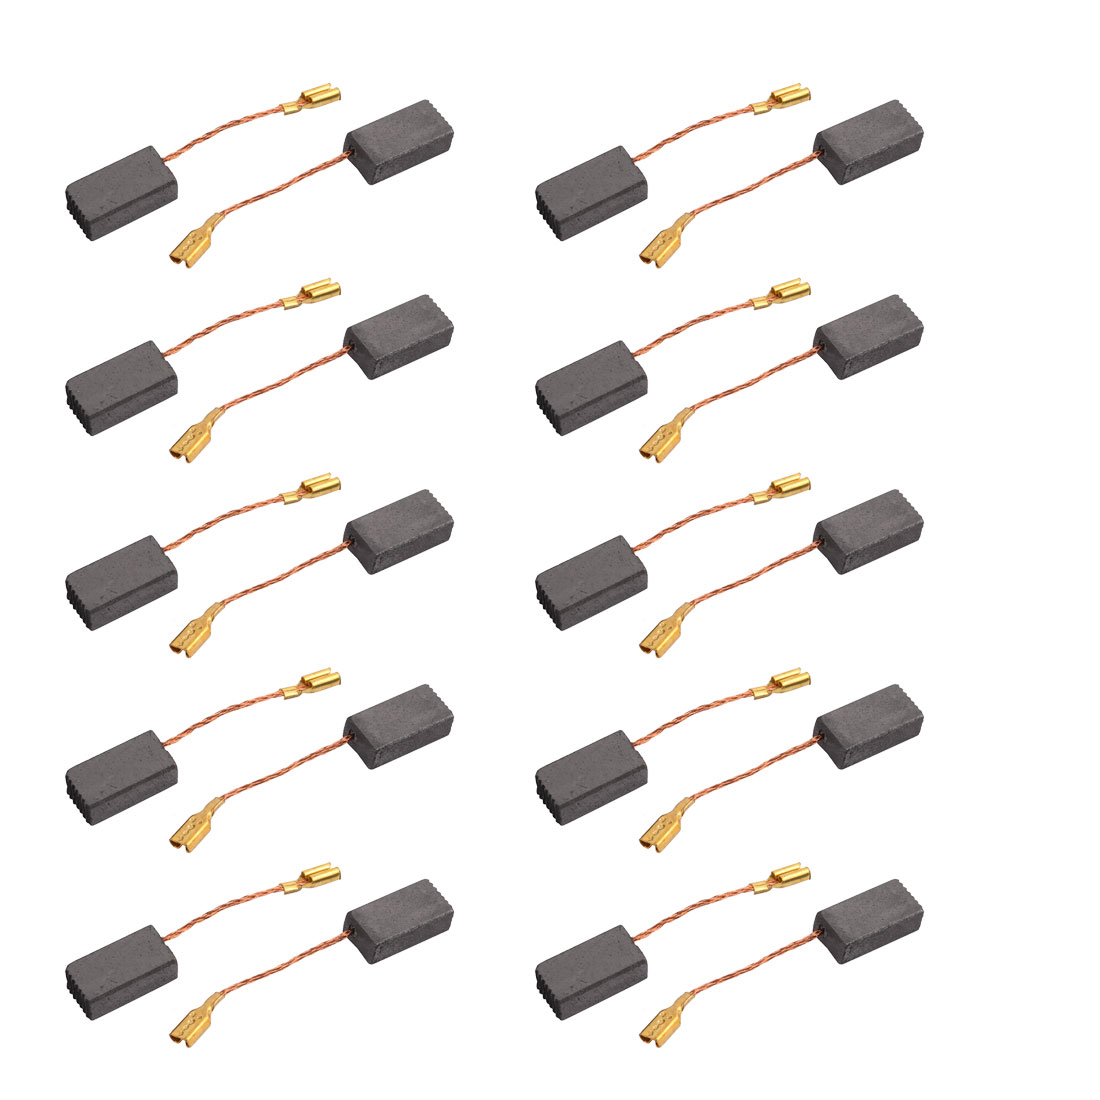 10Pairs 15mmx7.8mmx4.7mm Carbon Brushes Power Tool for Electric Hammer Drill Motor